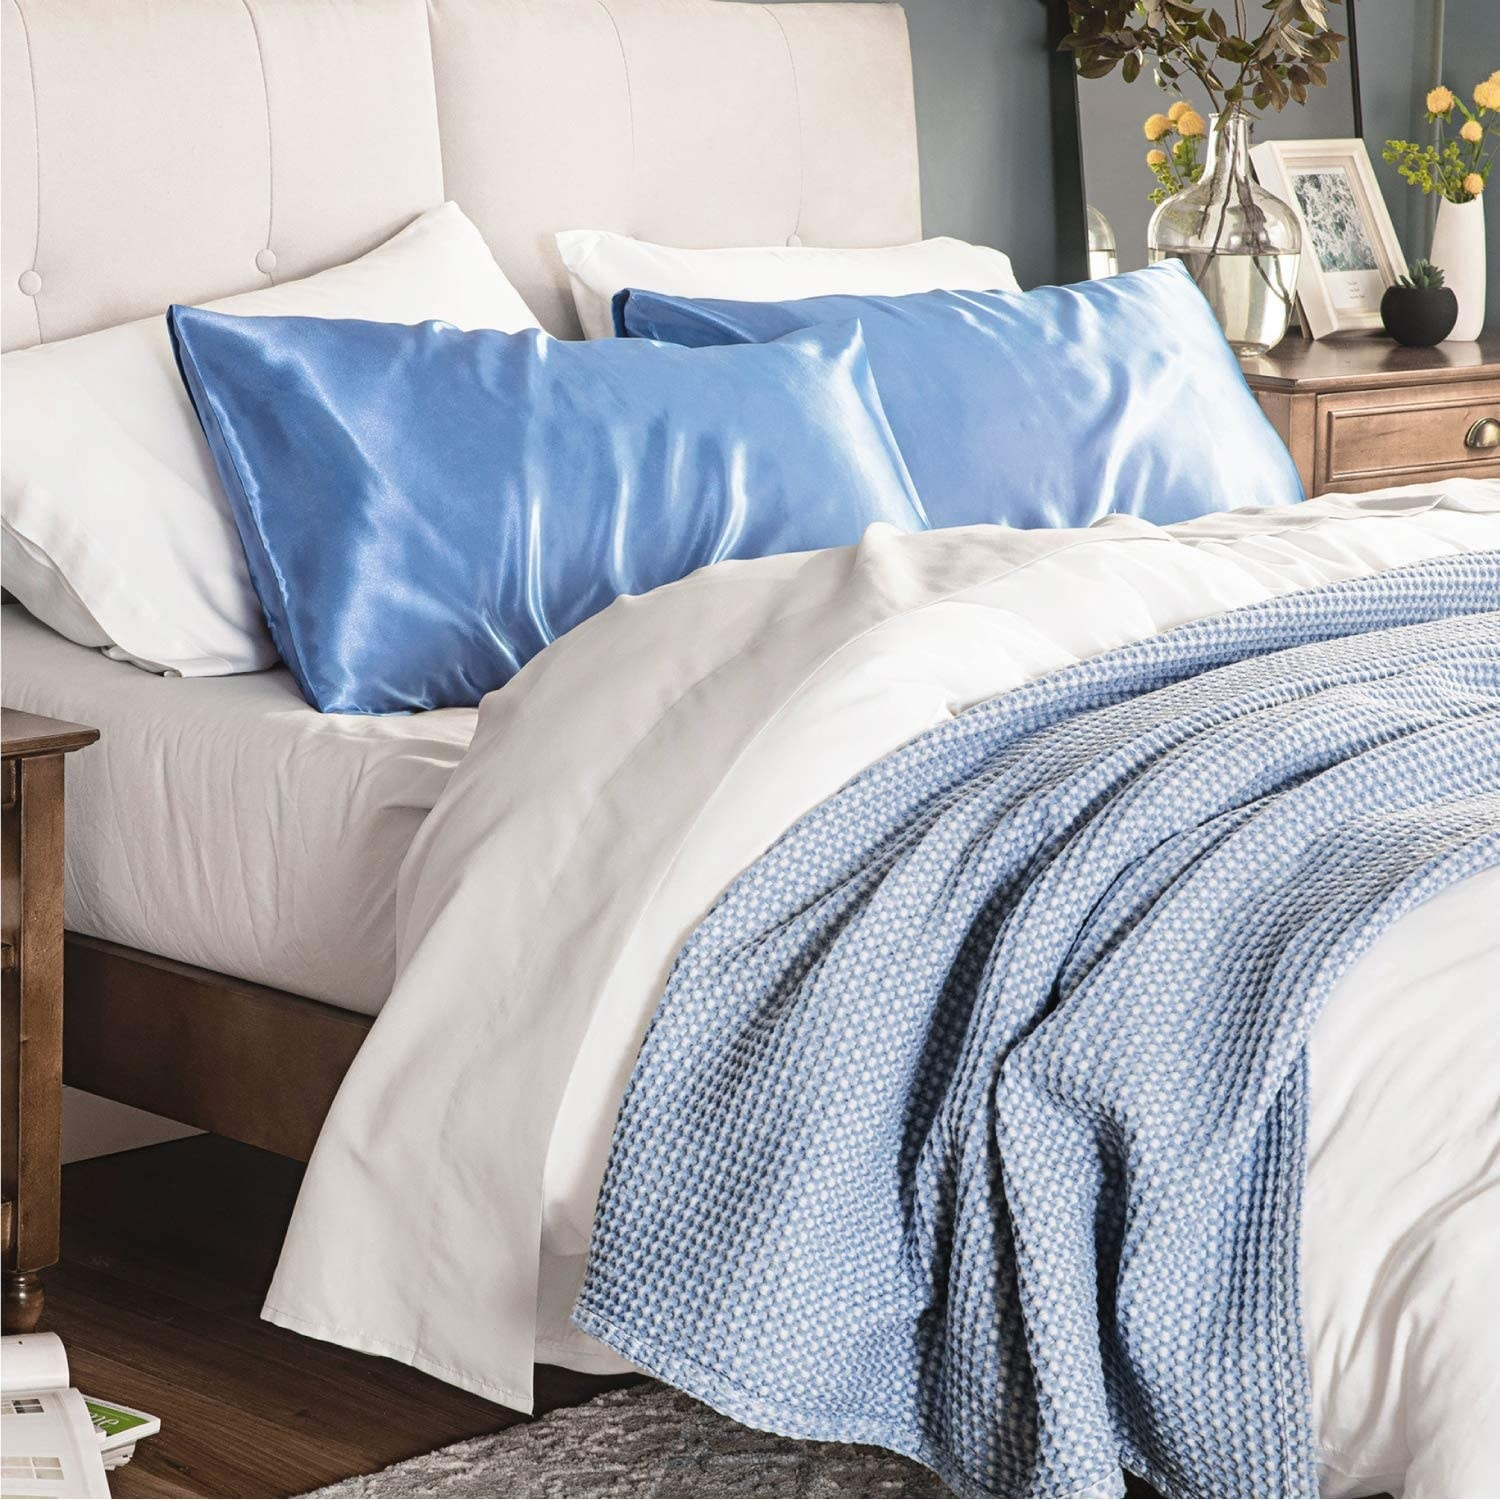 stock photo showing two blue satin pillowcases on a bed